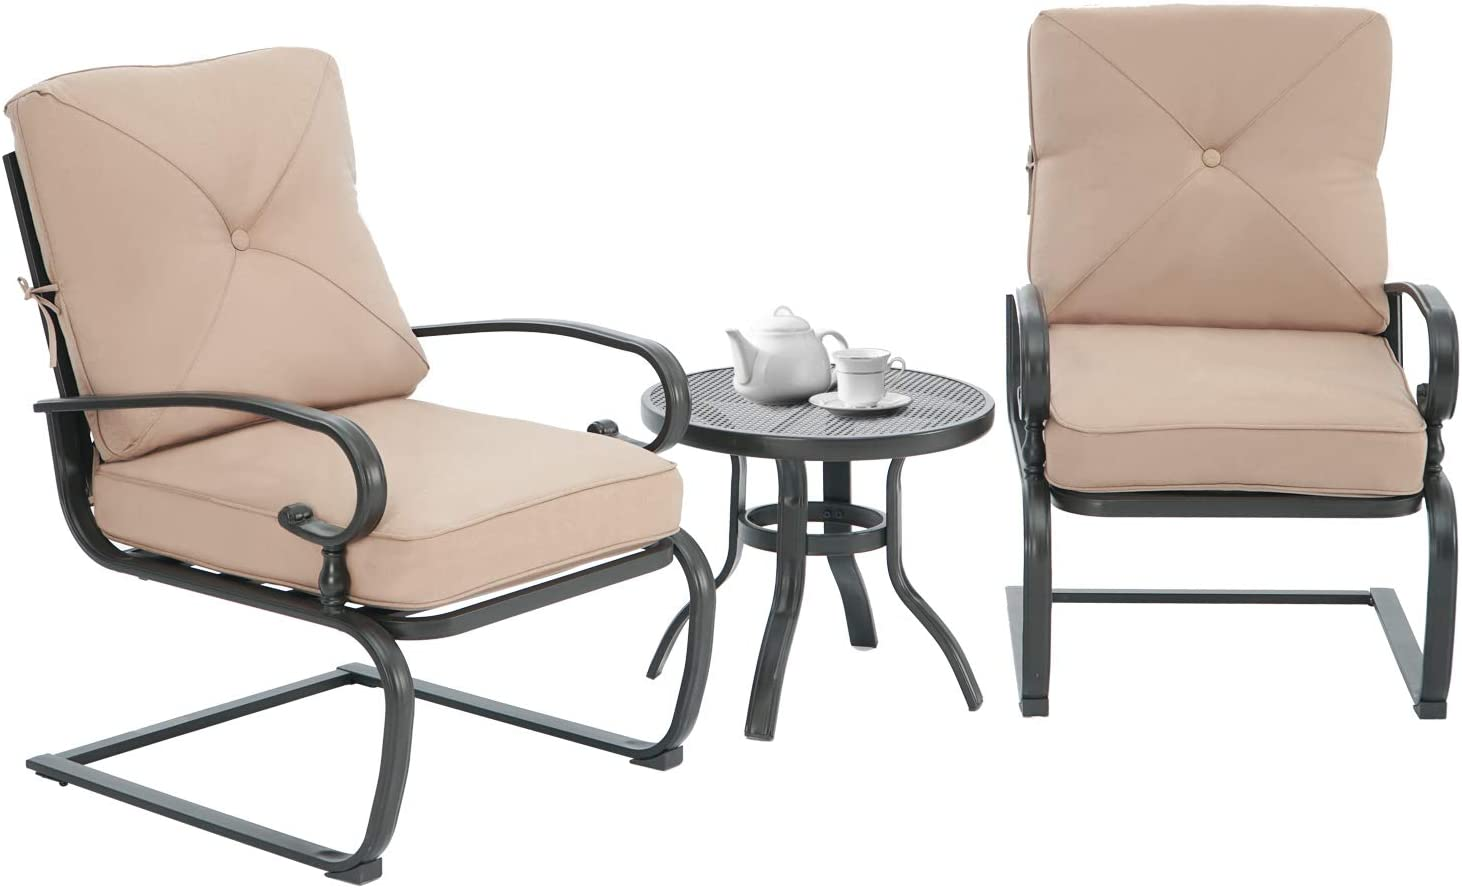 Patiomore 3 Piece Patio Bistro Set Ranking TOP4 Chairs and OFFicial mail order Metal Bistr Spring